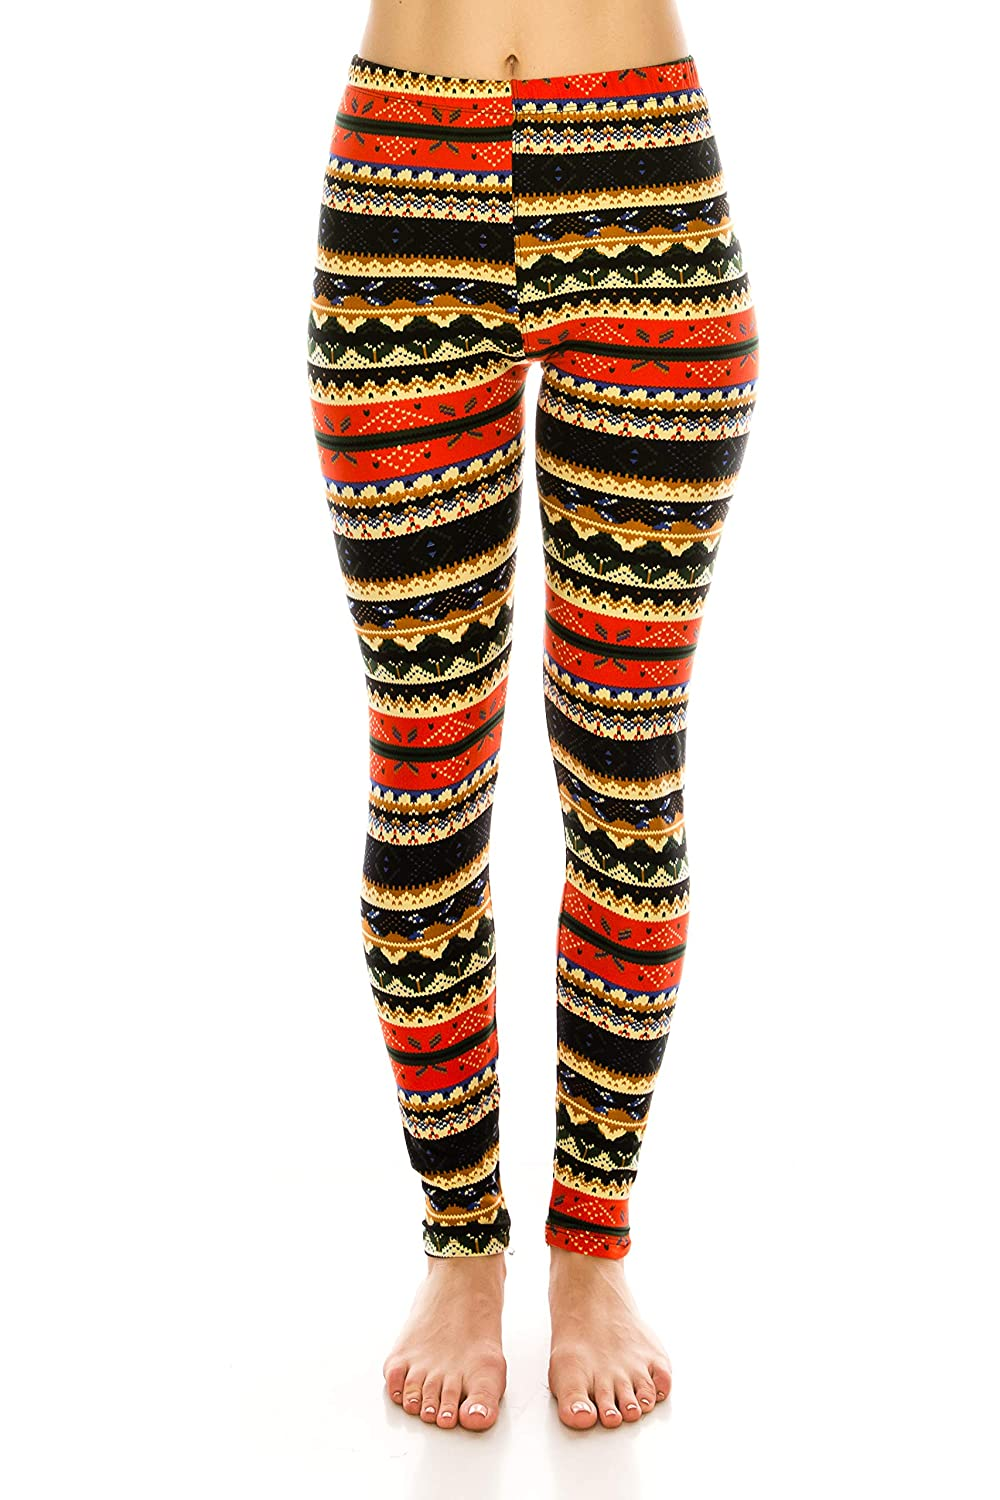 609f0e35235a82 ALWAYS Leggings Women Printed Patterned - Premium Buttery Soft Stretch Pants  at Amazon Women's Clothing store: